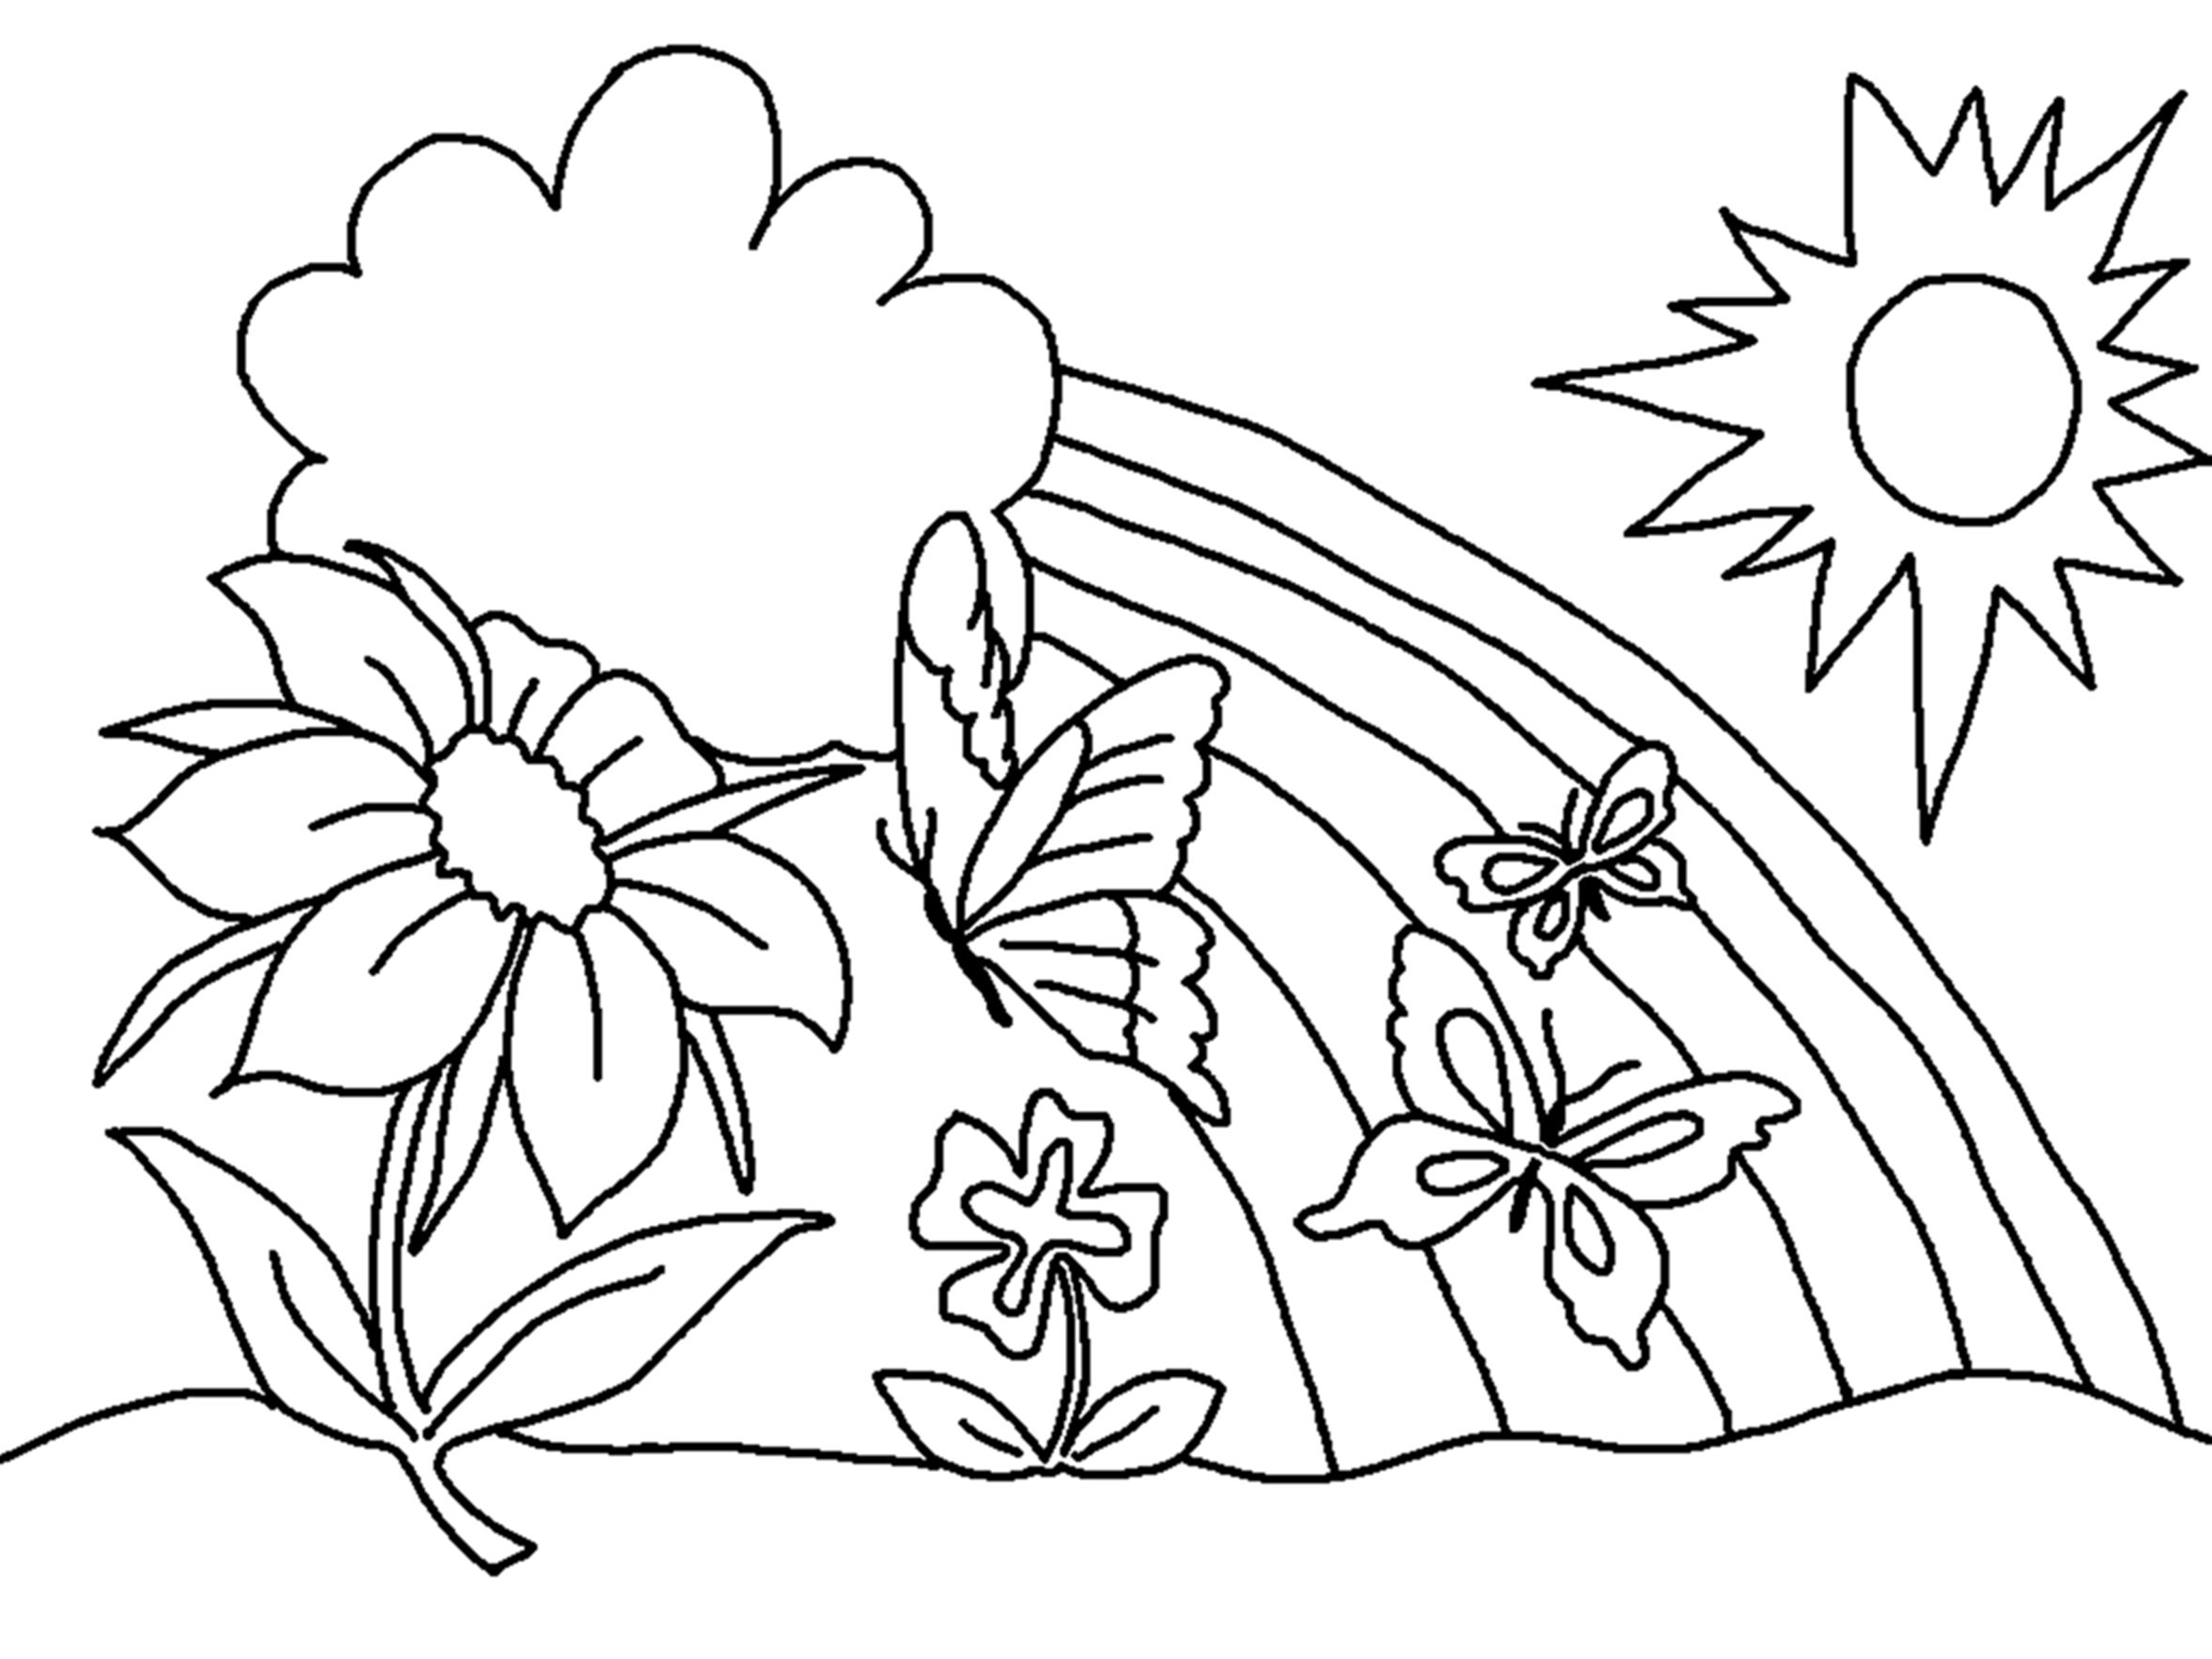 Flowers Coloring Pages Free Printable Flower Coloring Pages For Kids Best